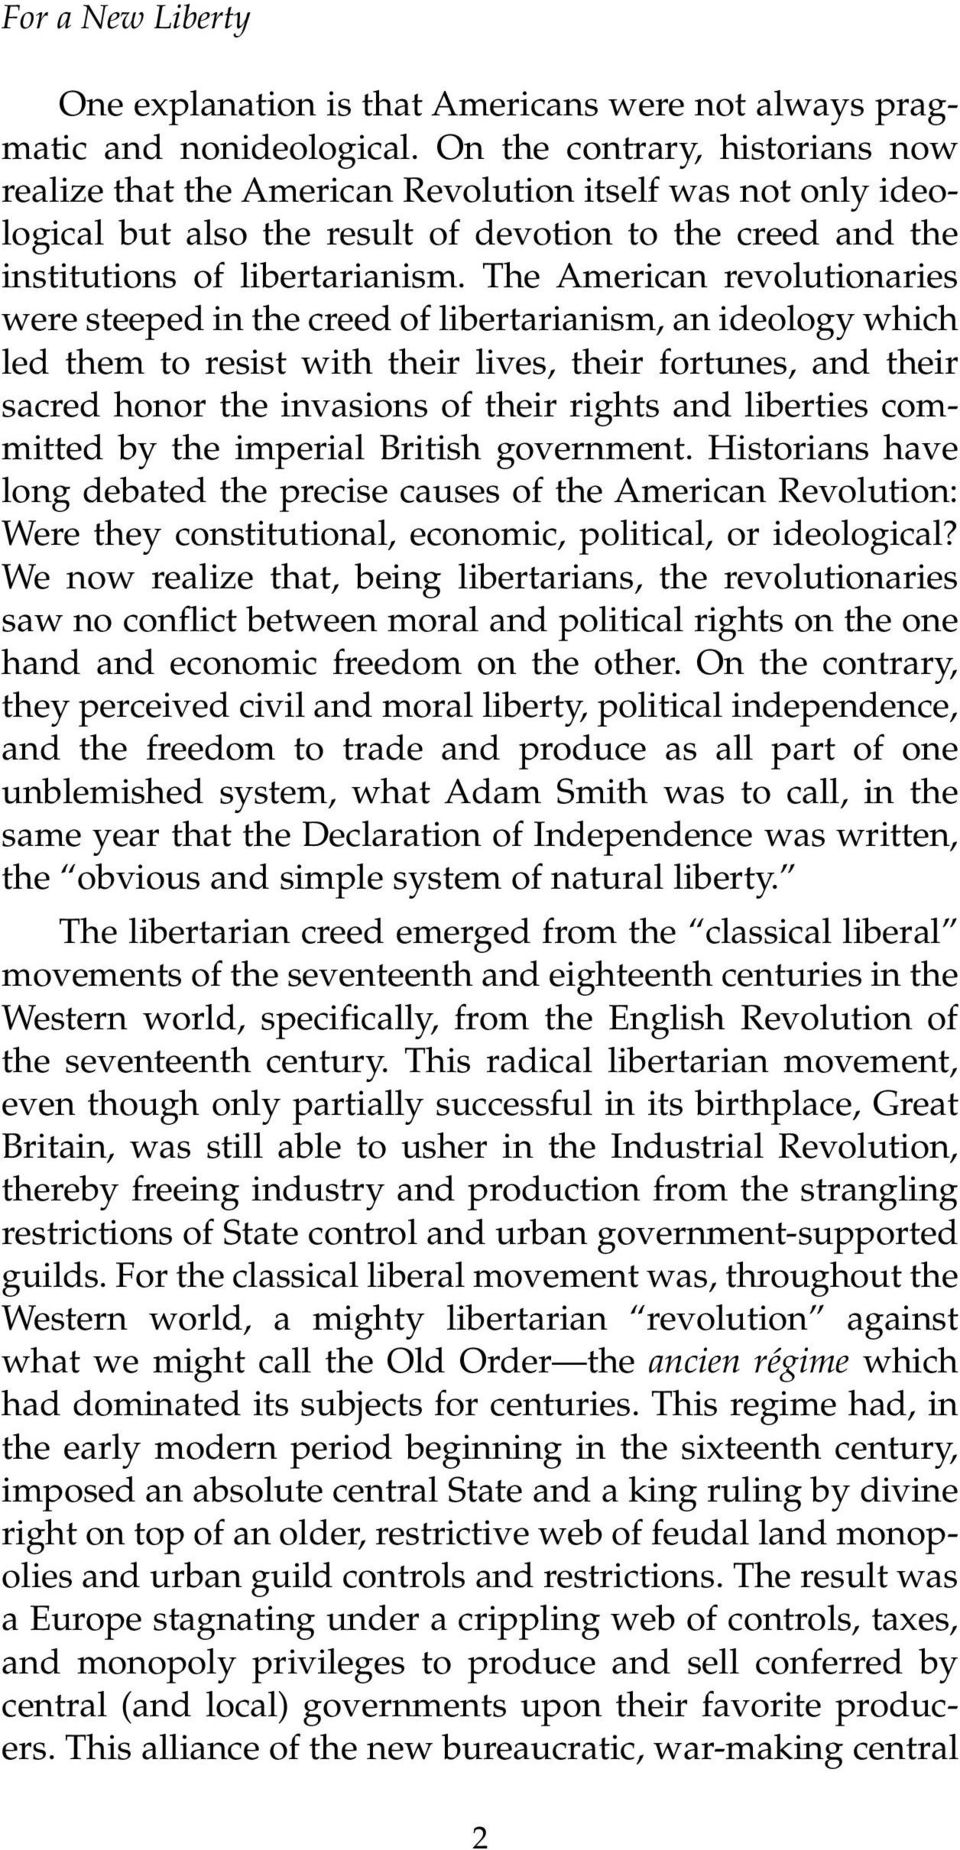 The American revolutionaries were steeped in the creed of libertarianism, an ideology which led them to resist with their lives, their fortunes, and their sacred honor the invasions of their rights